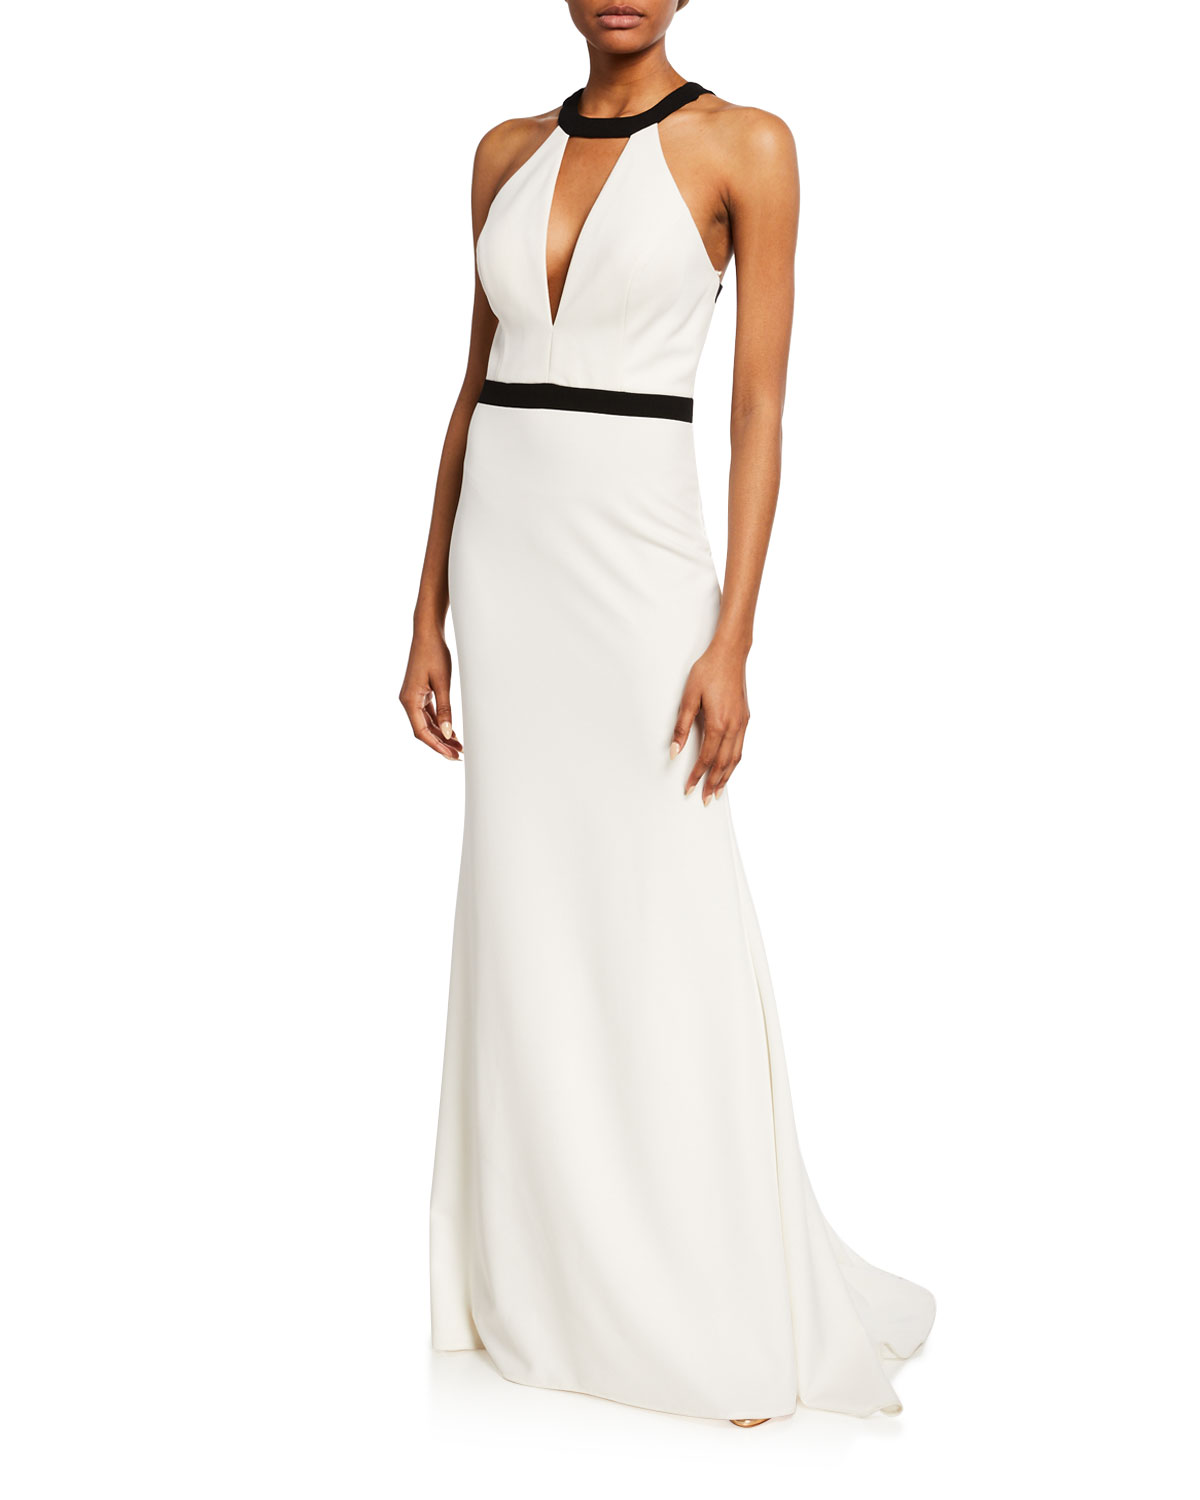 Faviana White/Black Two-Tone Framed Keyhole Halter Gown